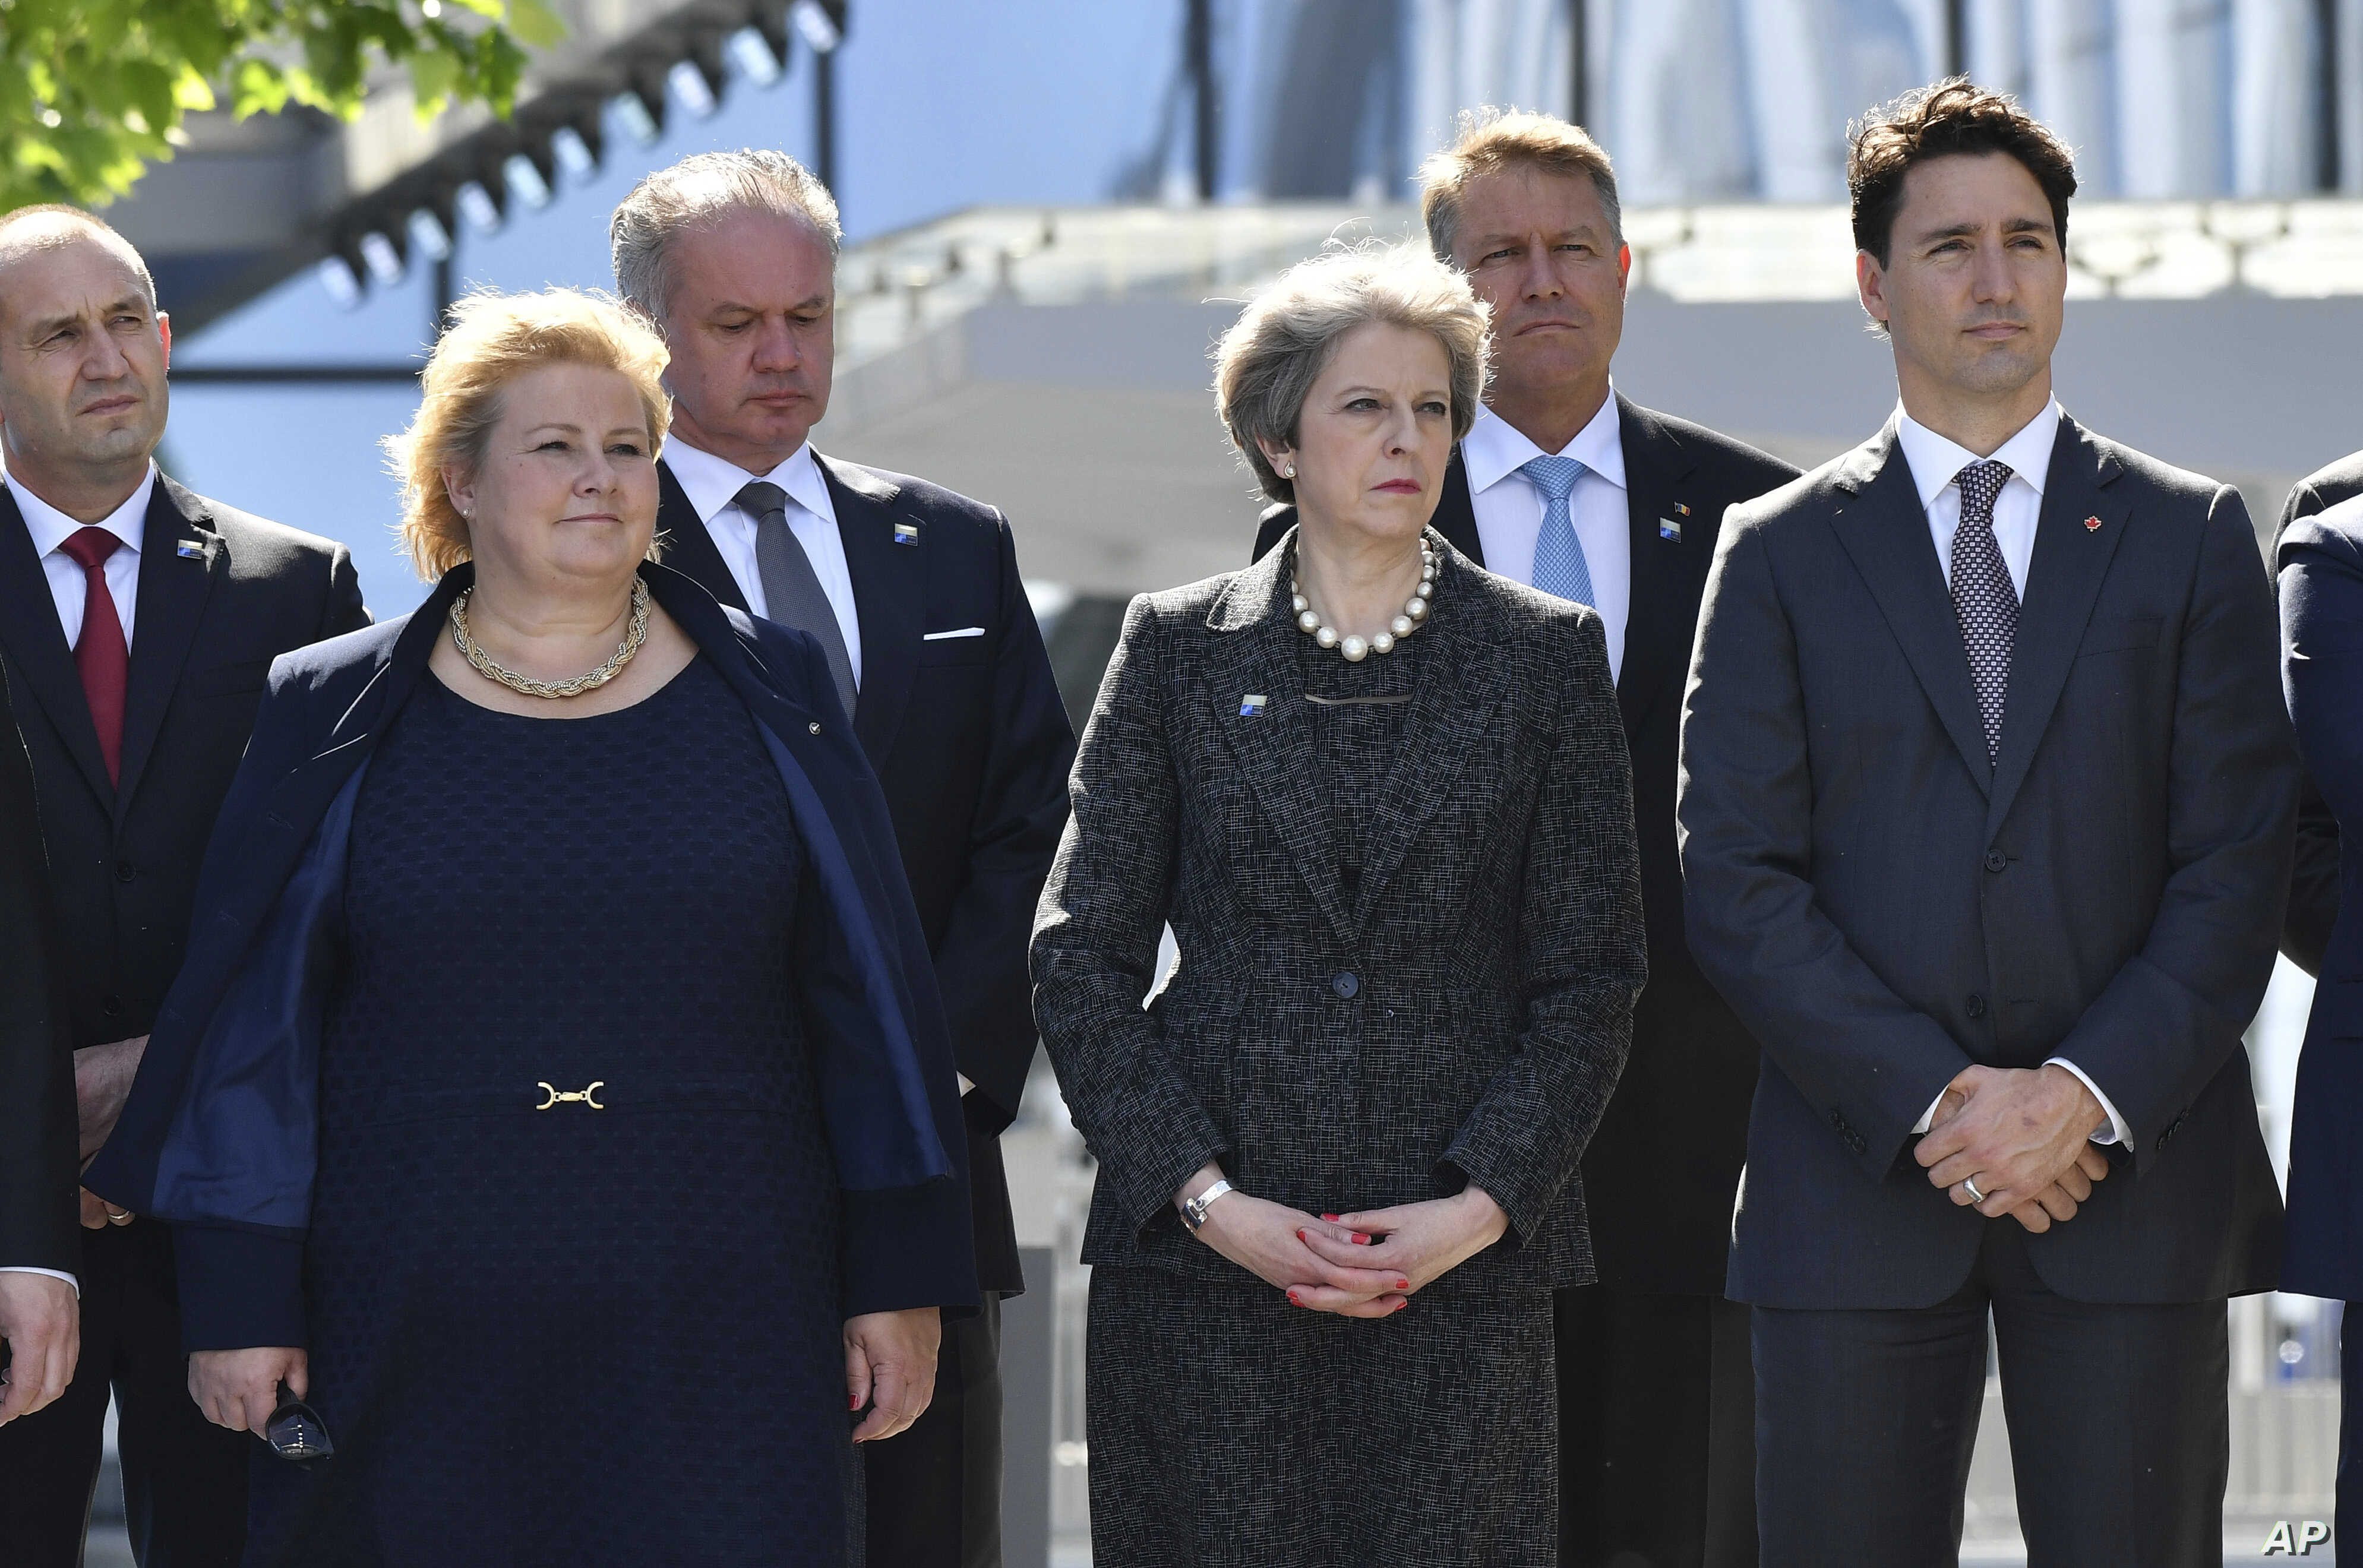 Norway's PM Erna Solberg, British PM Theresa May, Canadian PM Justin Trudeau, from left, look on as U.S. President Donald Trump speaks during ceremony at the NATO summit in Brussels on May 25, 2017.